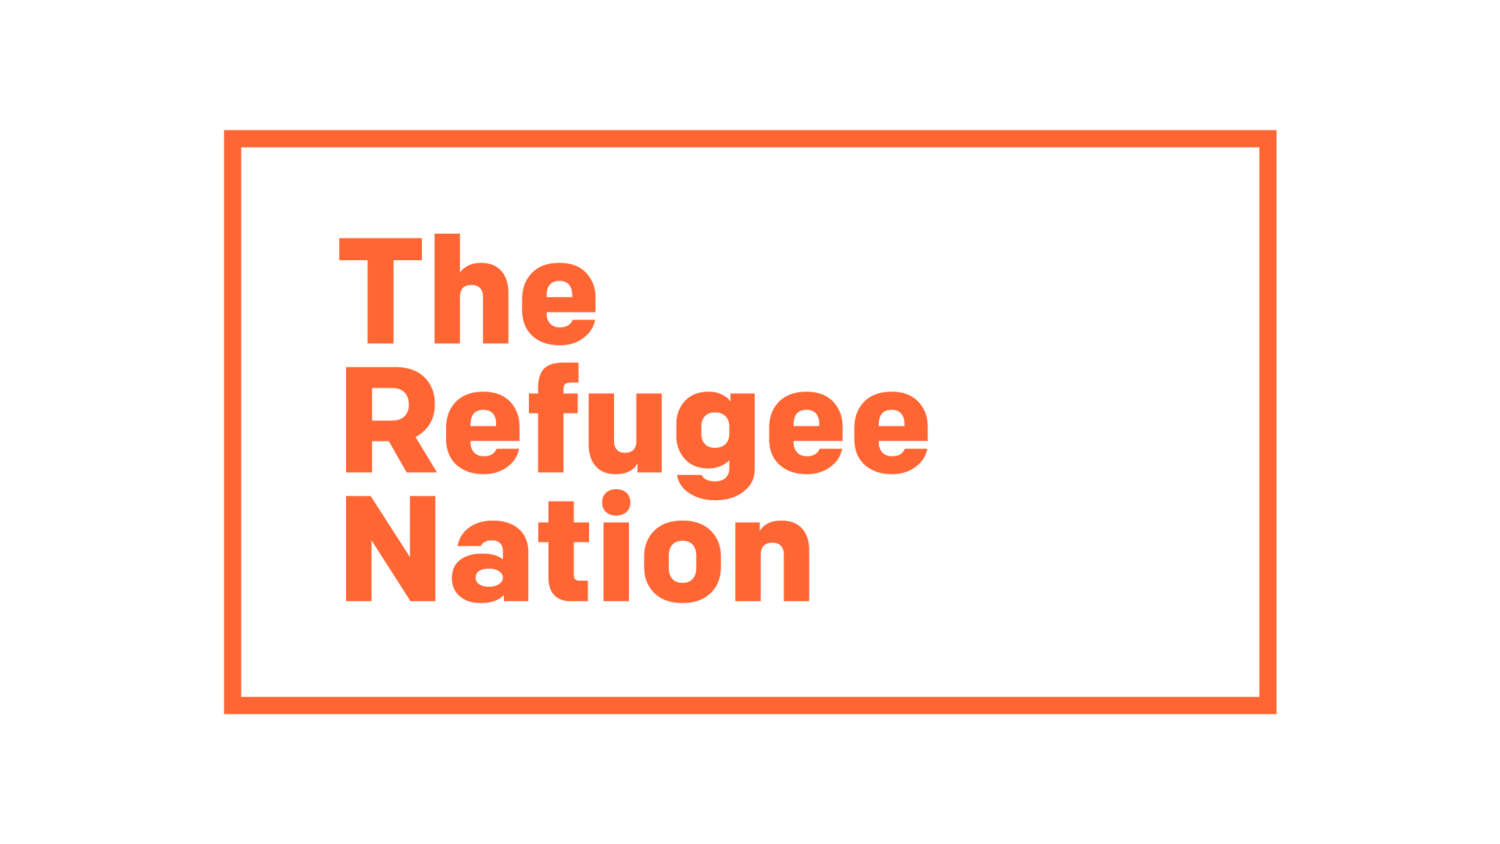 The Refugee Nation